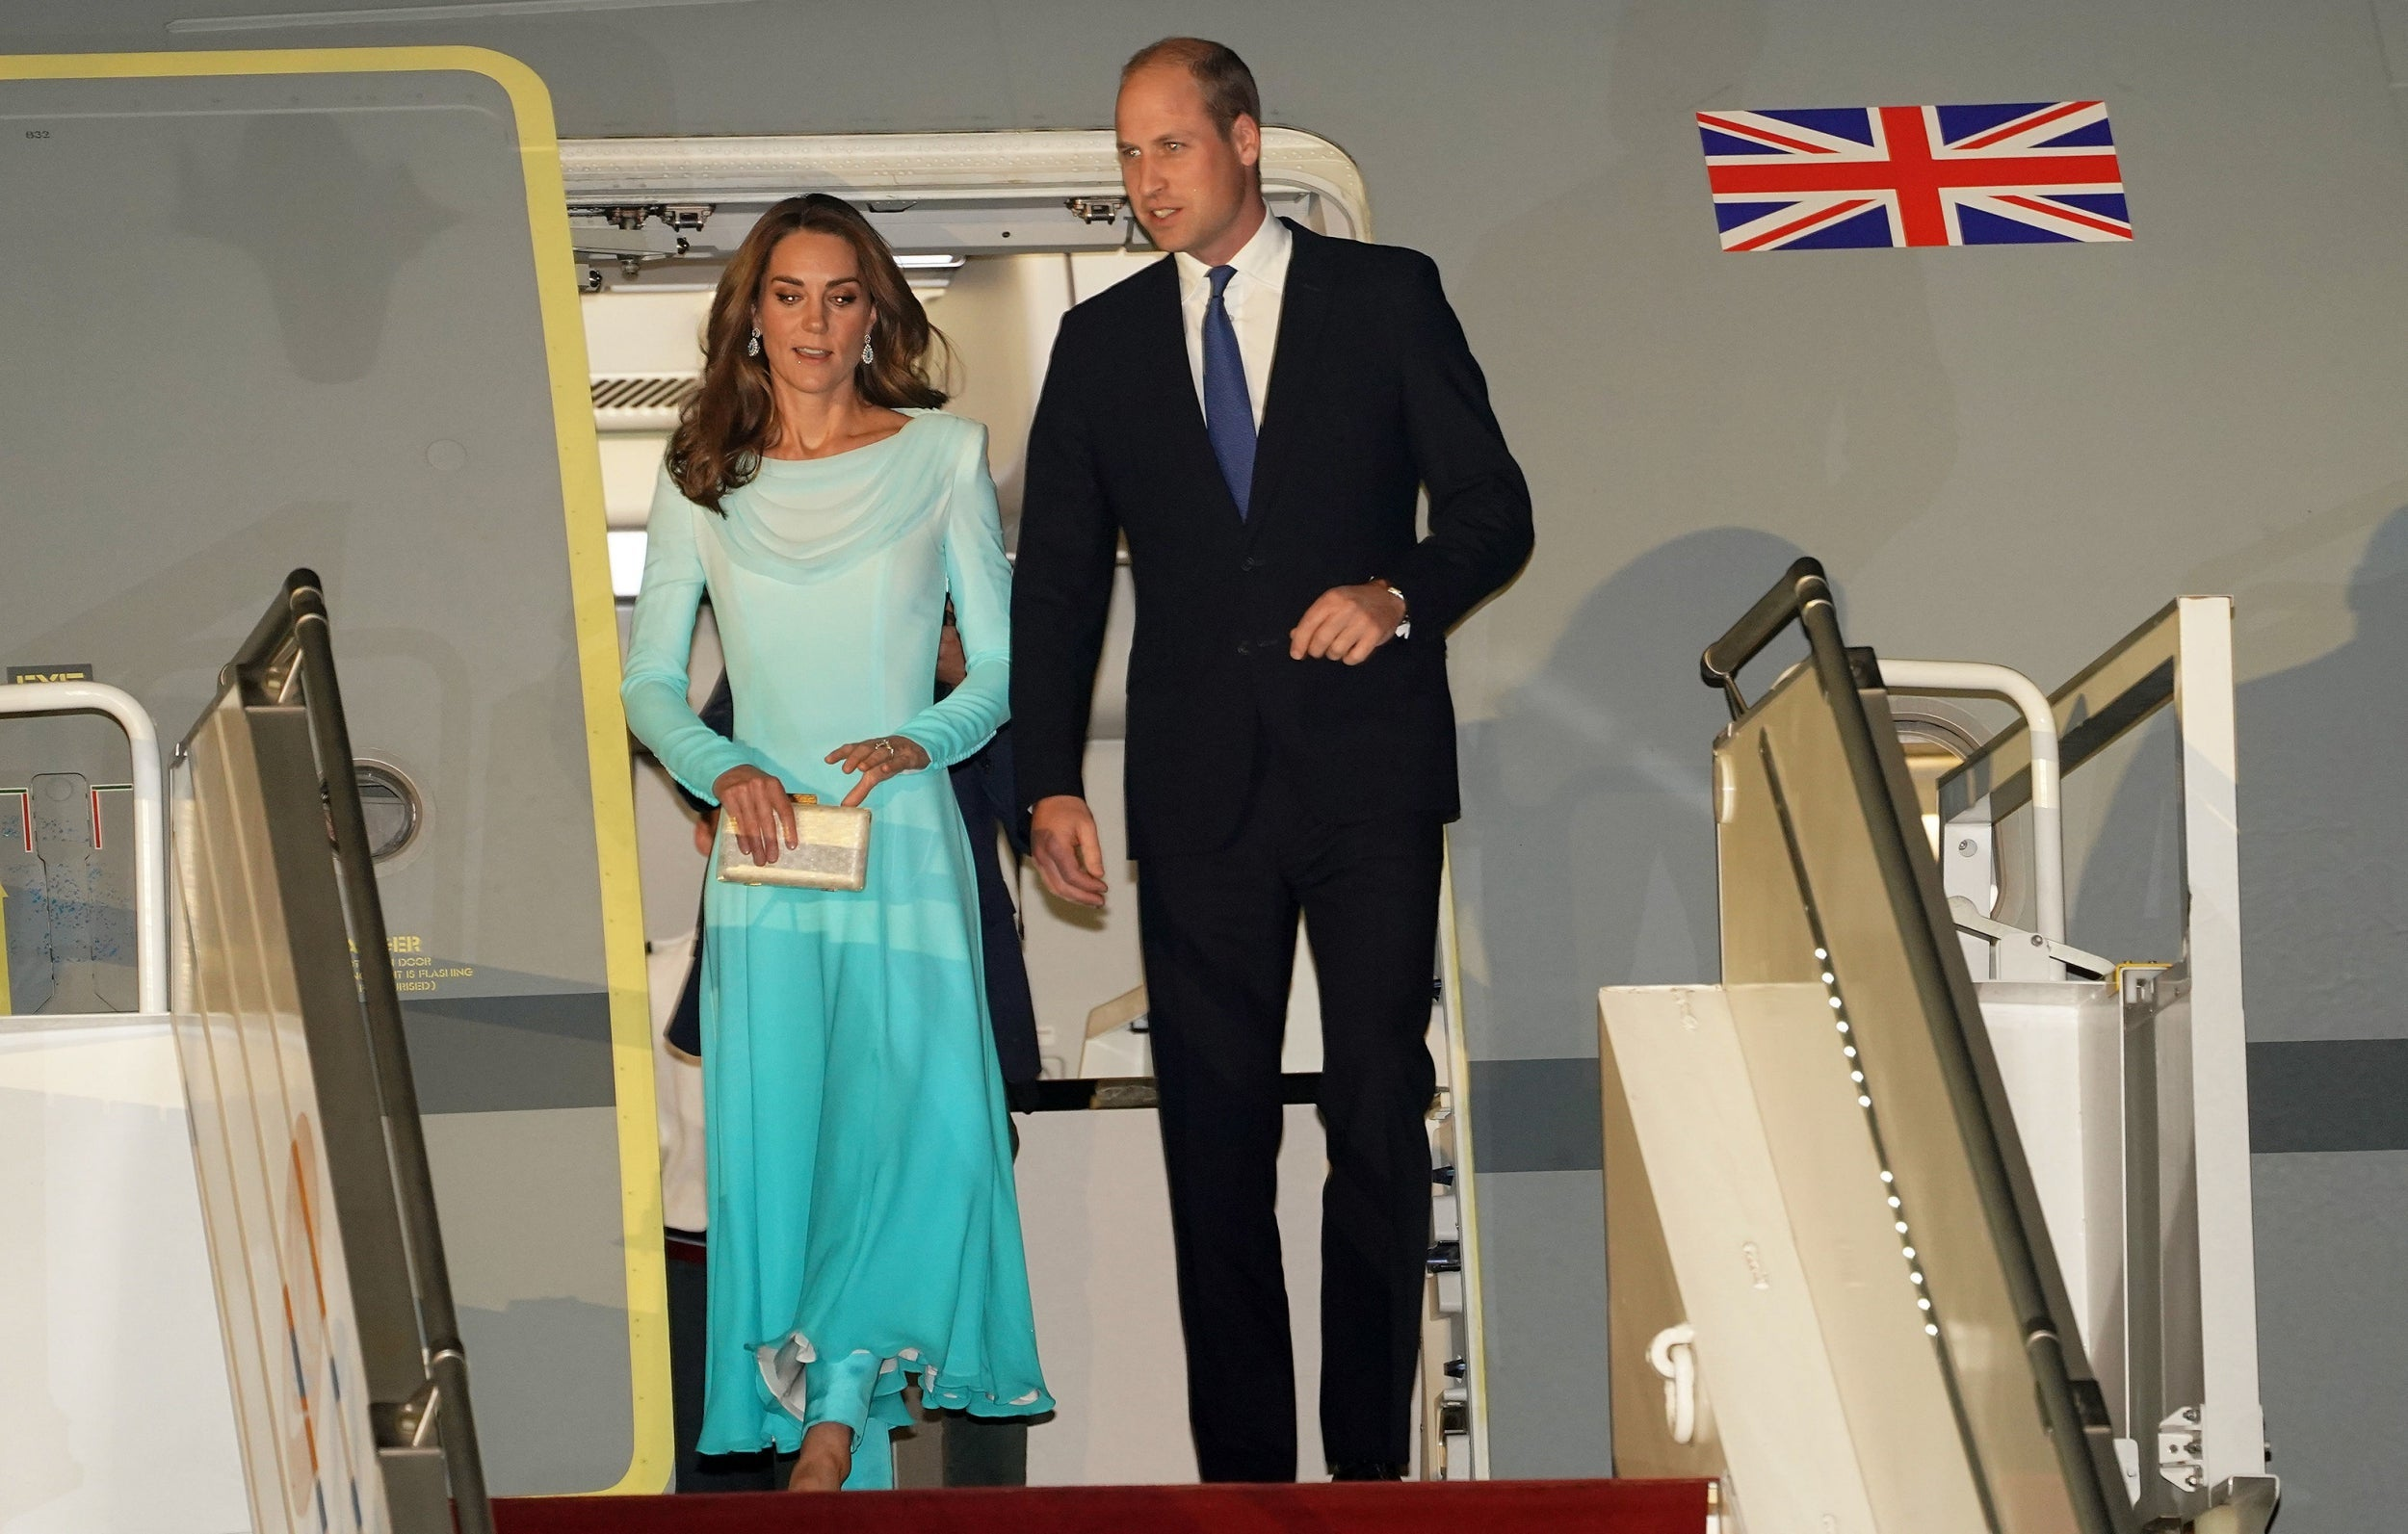 Prince William and Kate's flight aborts landing twice after severe t…